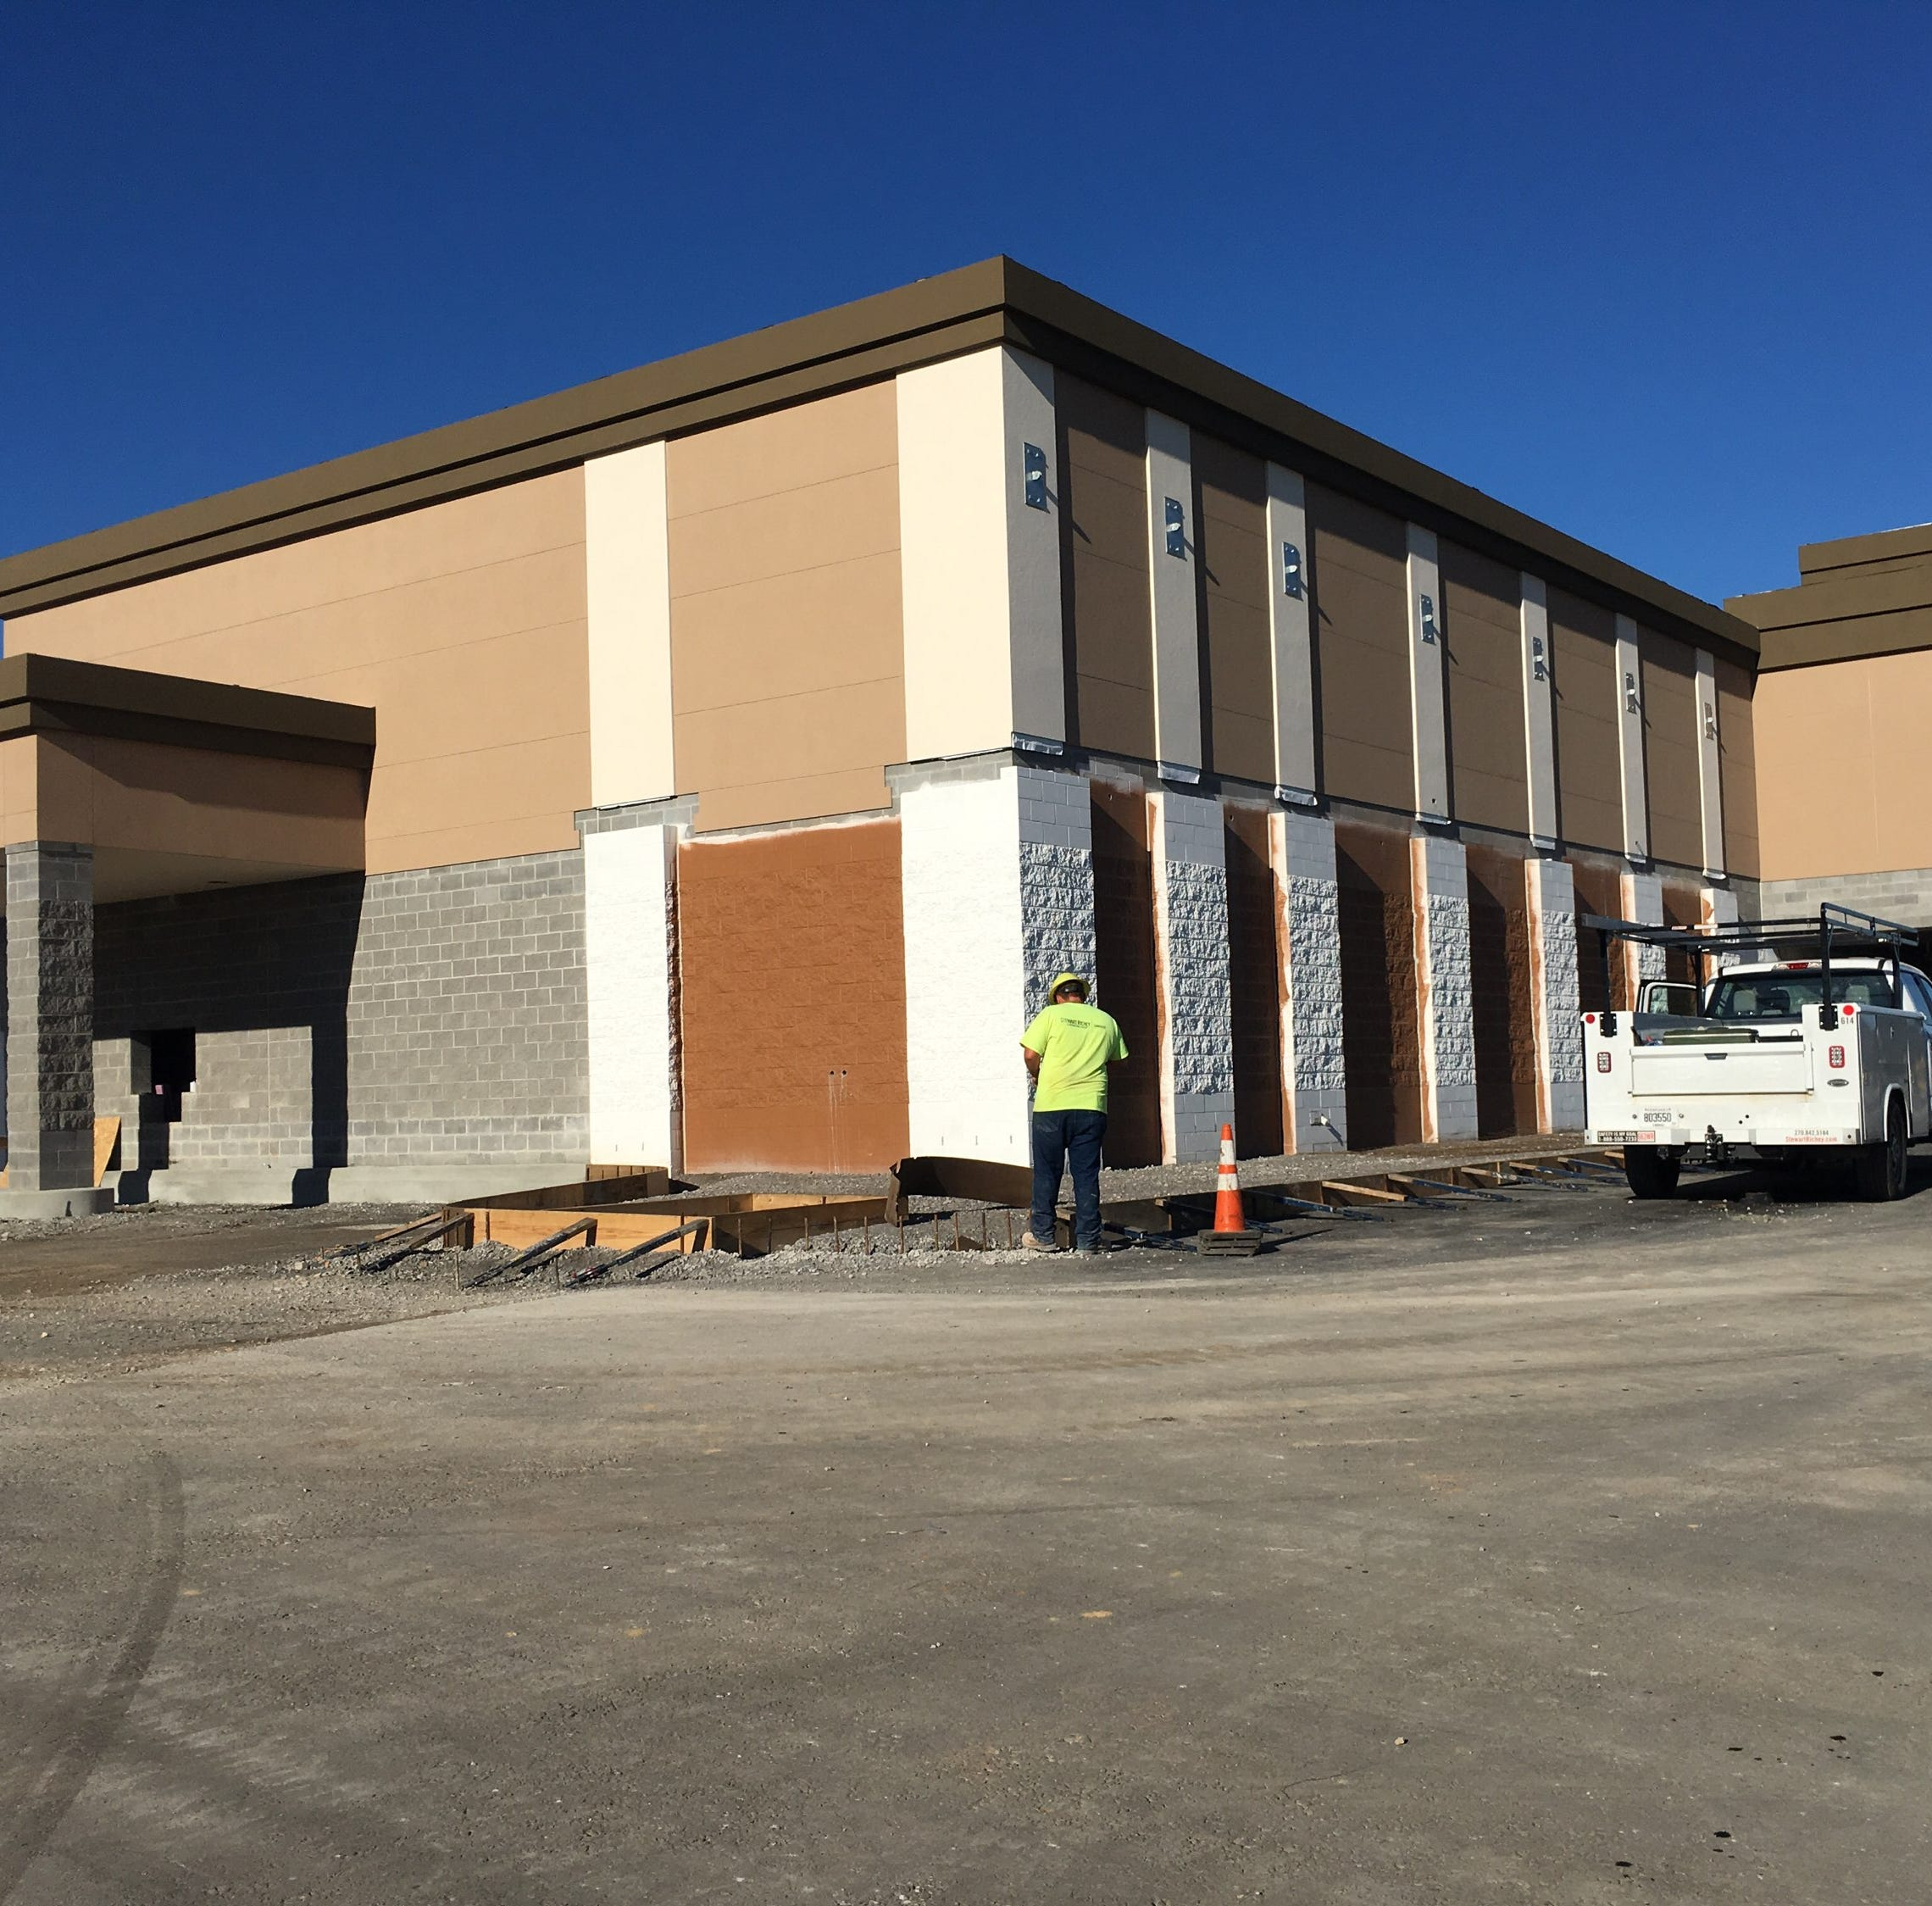 Sango Square, with Clarksville's third Publix, adjusts opening schedule